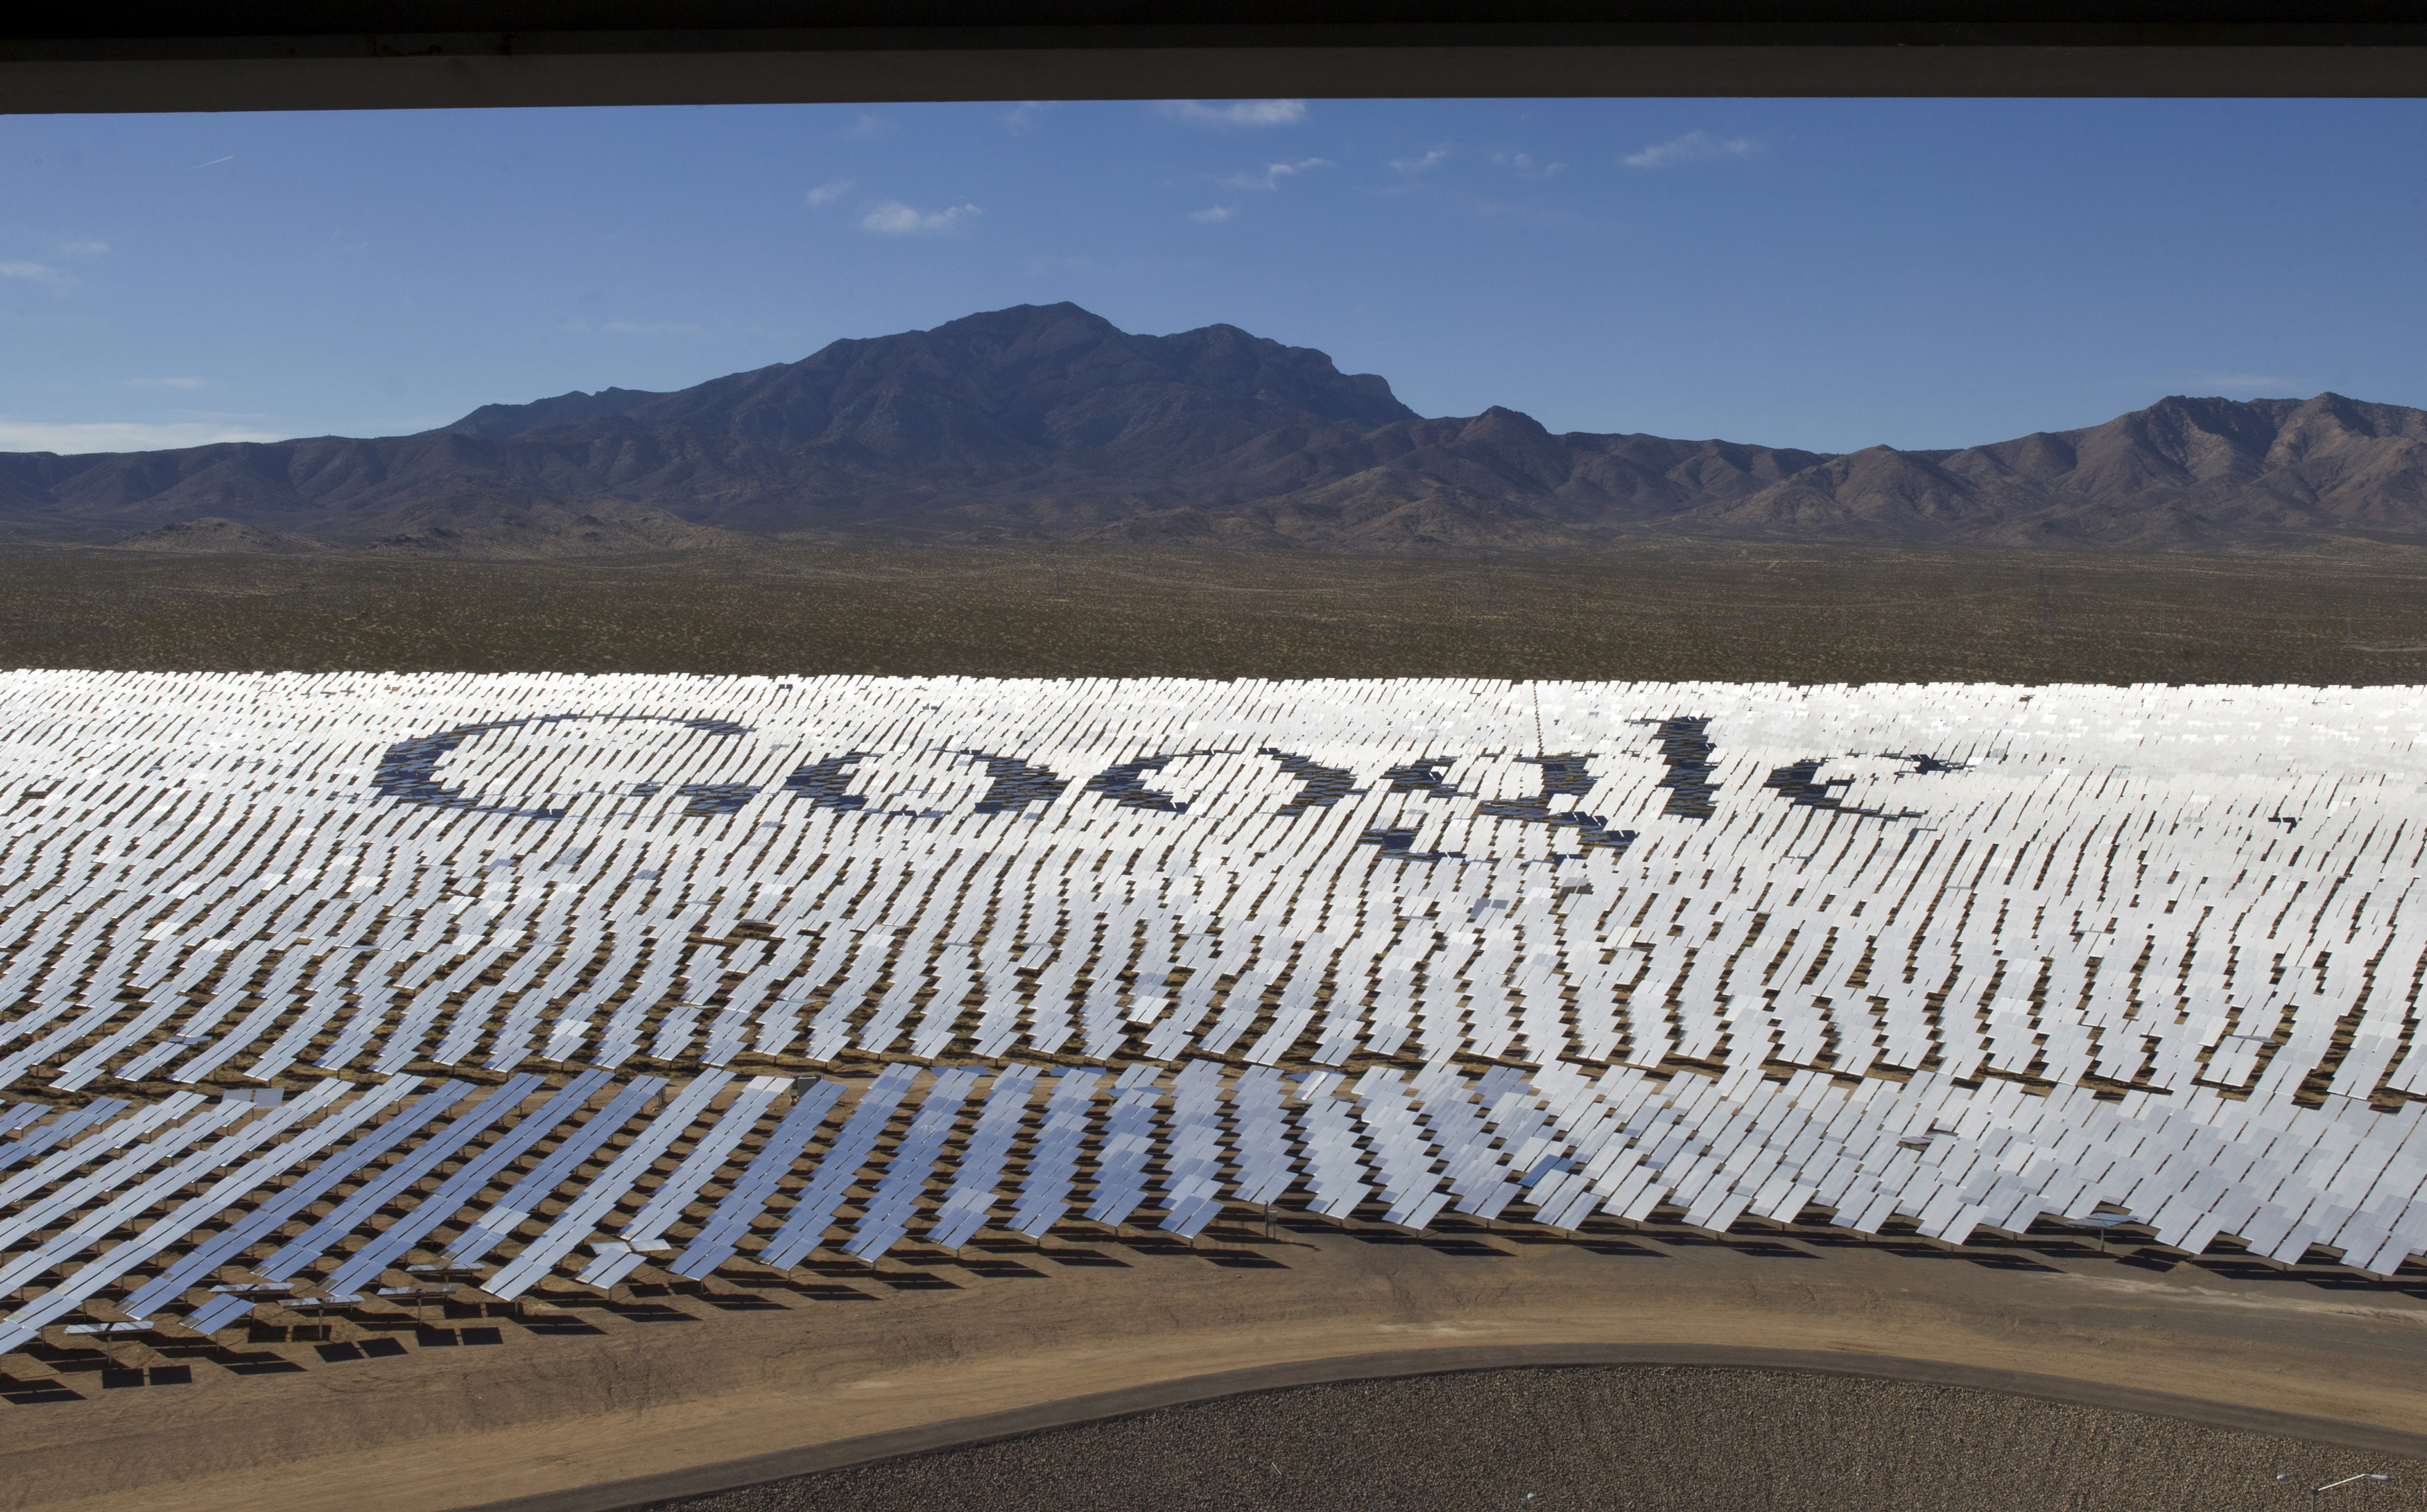 The Google logo is spelled out in heliostats (mirrors that track the sun and reflect the sunlight onto a central receiving point) during a tour of the Ivanpah Solar Electric Generating System in the Mojave Desert near the California-Nevada border February 13, 2014. The project, a partnership of NRG, BrightSource, Google and Bechtel, is the world's largest solar thermal facility and uses 347,000 sun-facing mirrors to produce 392 Megawatts of electricity, enough energy to power more than 140,000 homes.